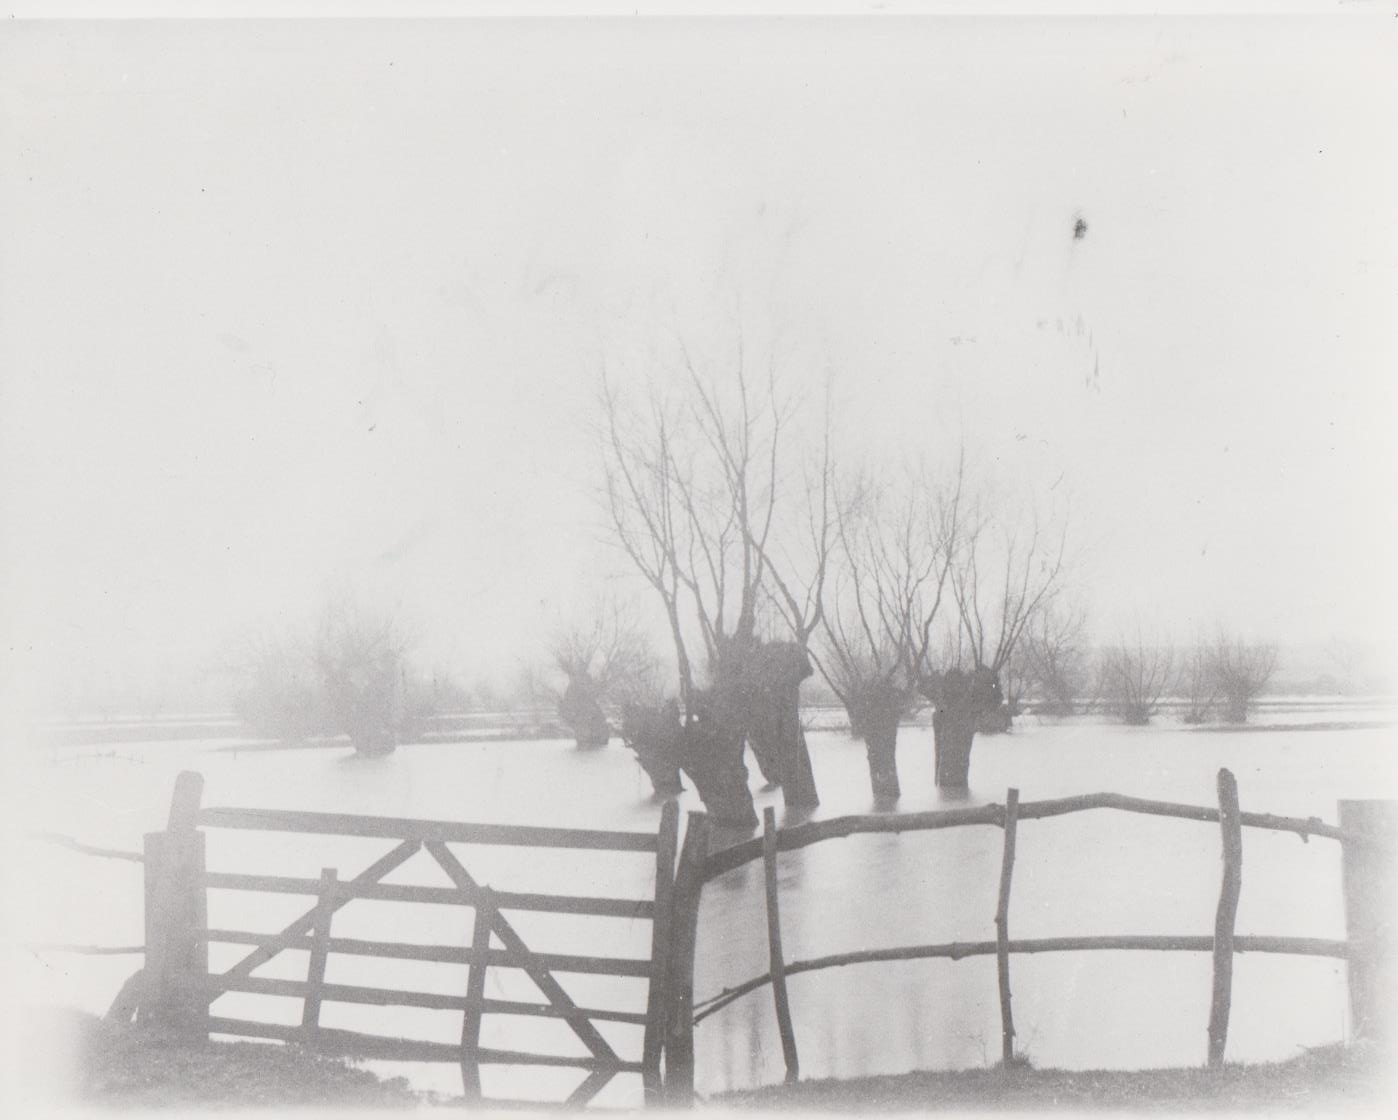 h130_flooded_fields_c1900-001.jpg